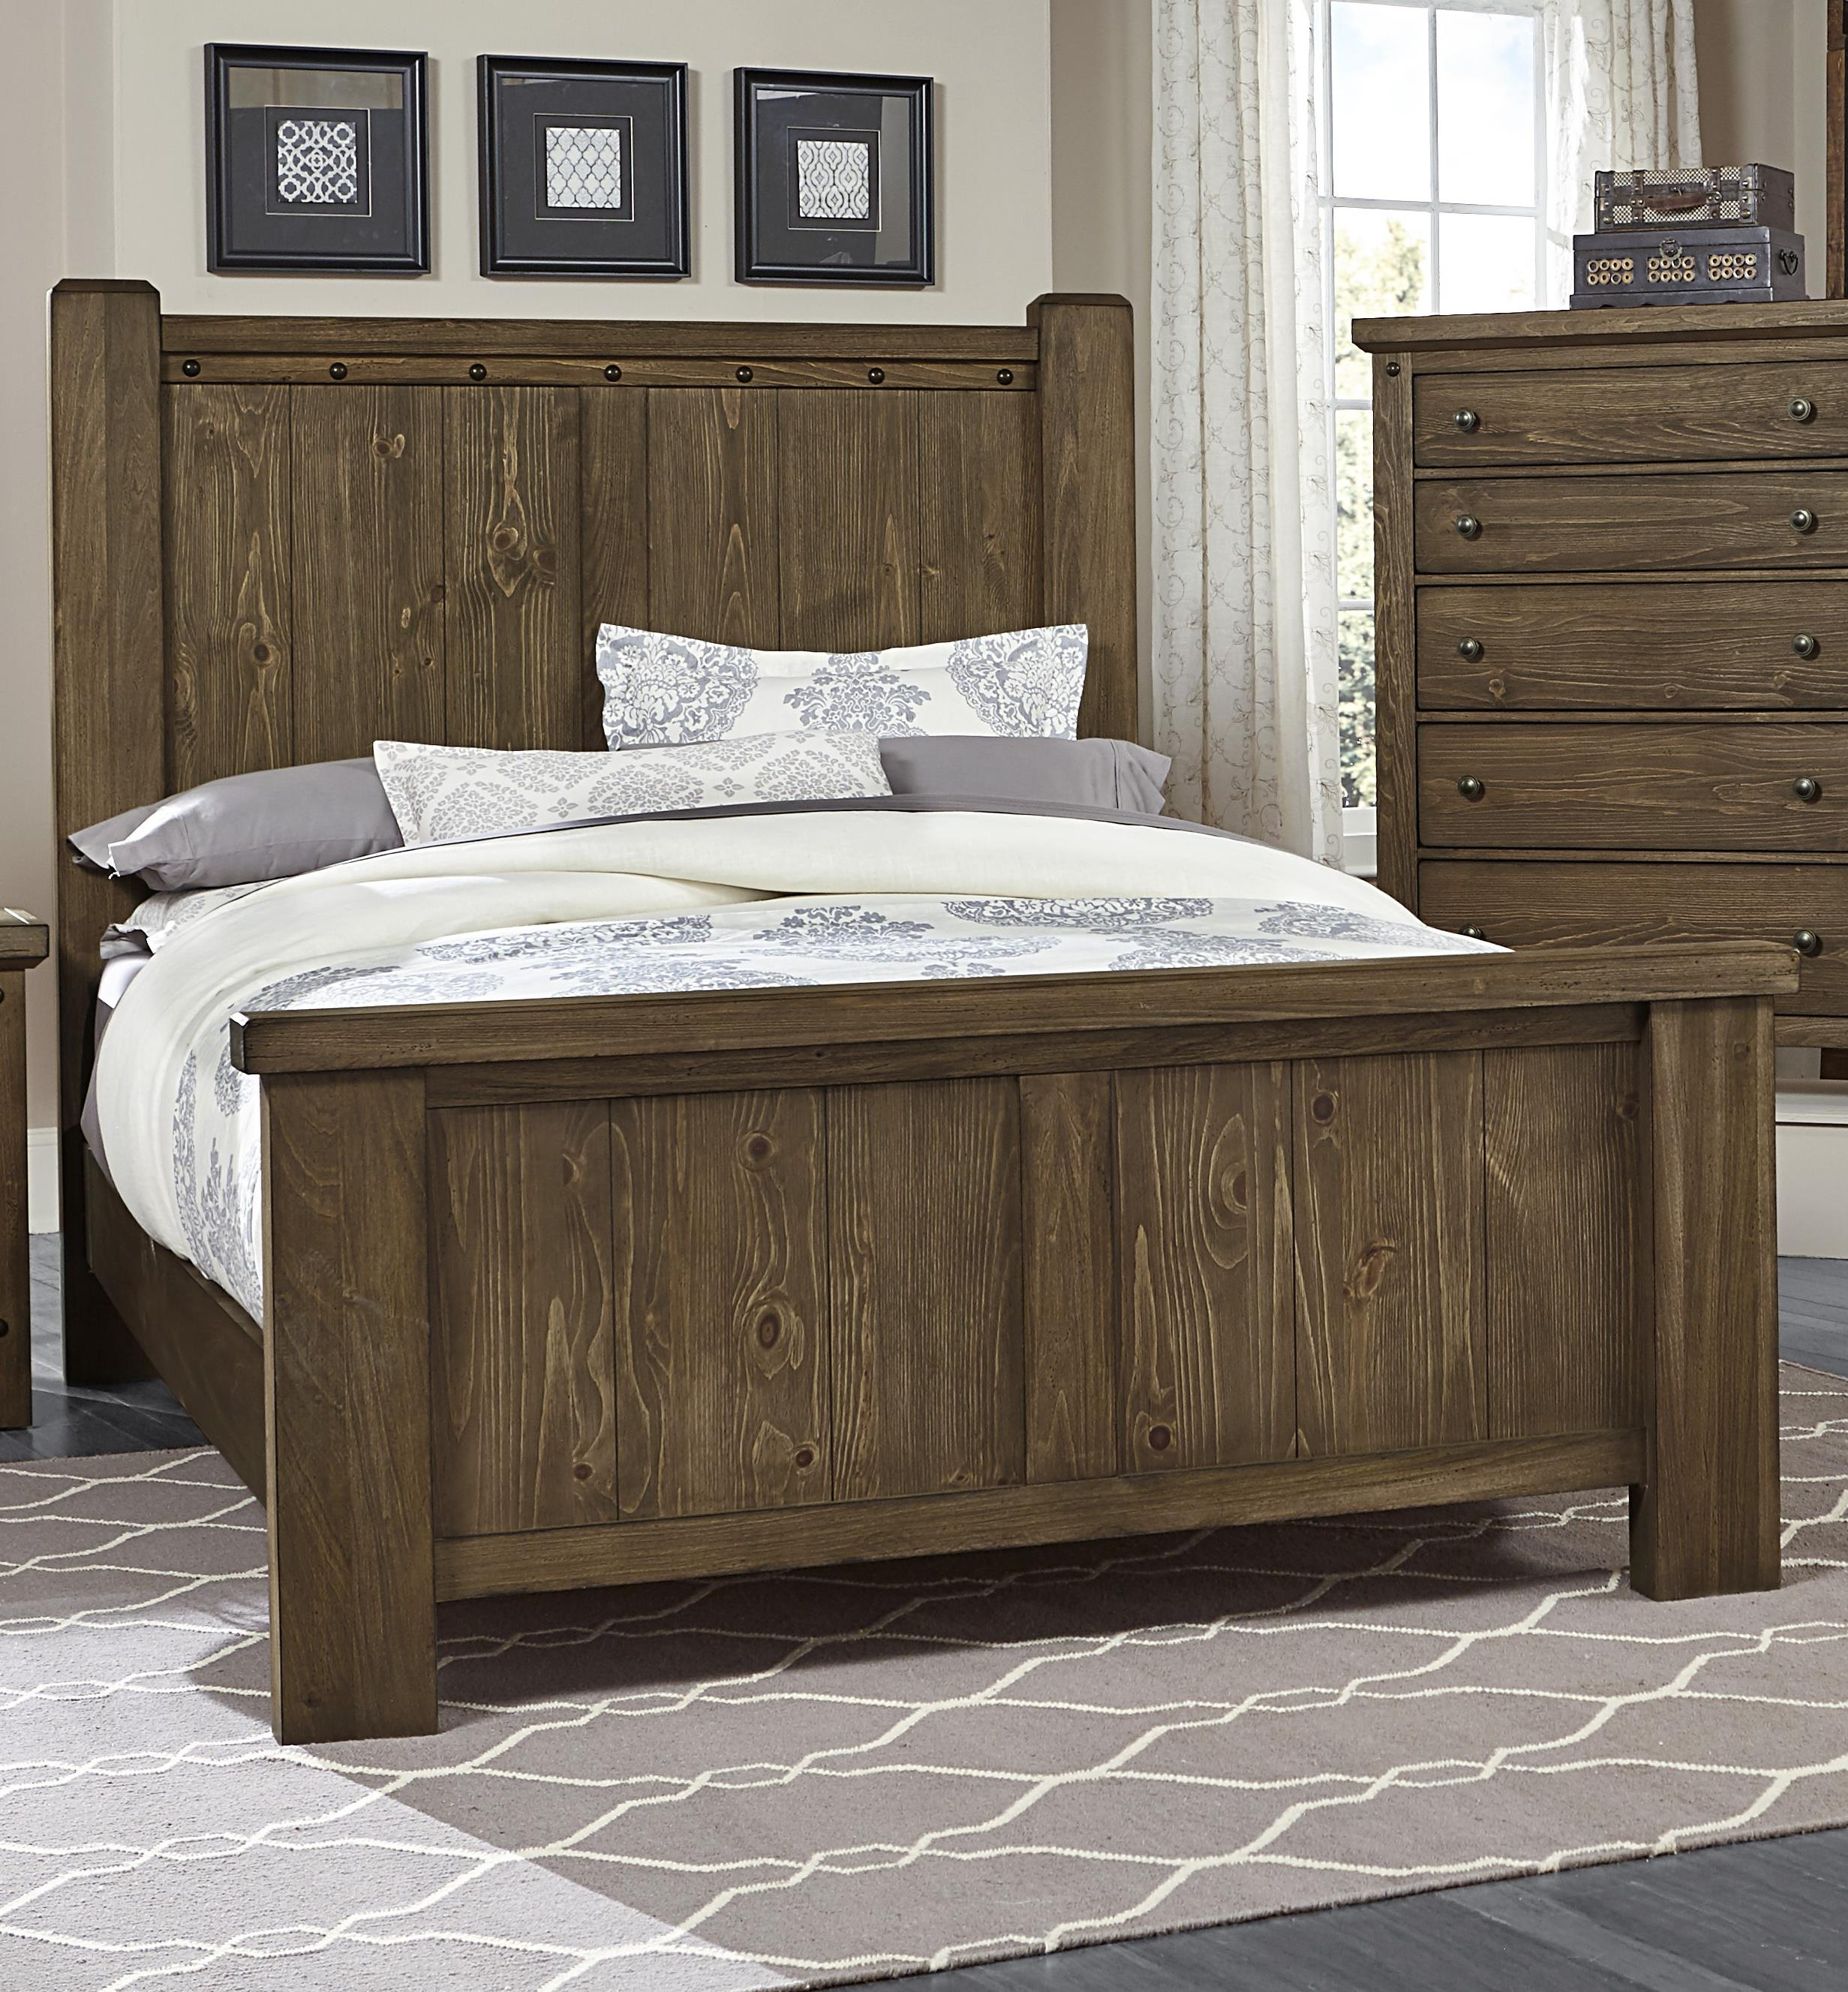 Vaughan Bassett Collaboration King Poster Bed - Item Number: 610-669+966+922+MS2